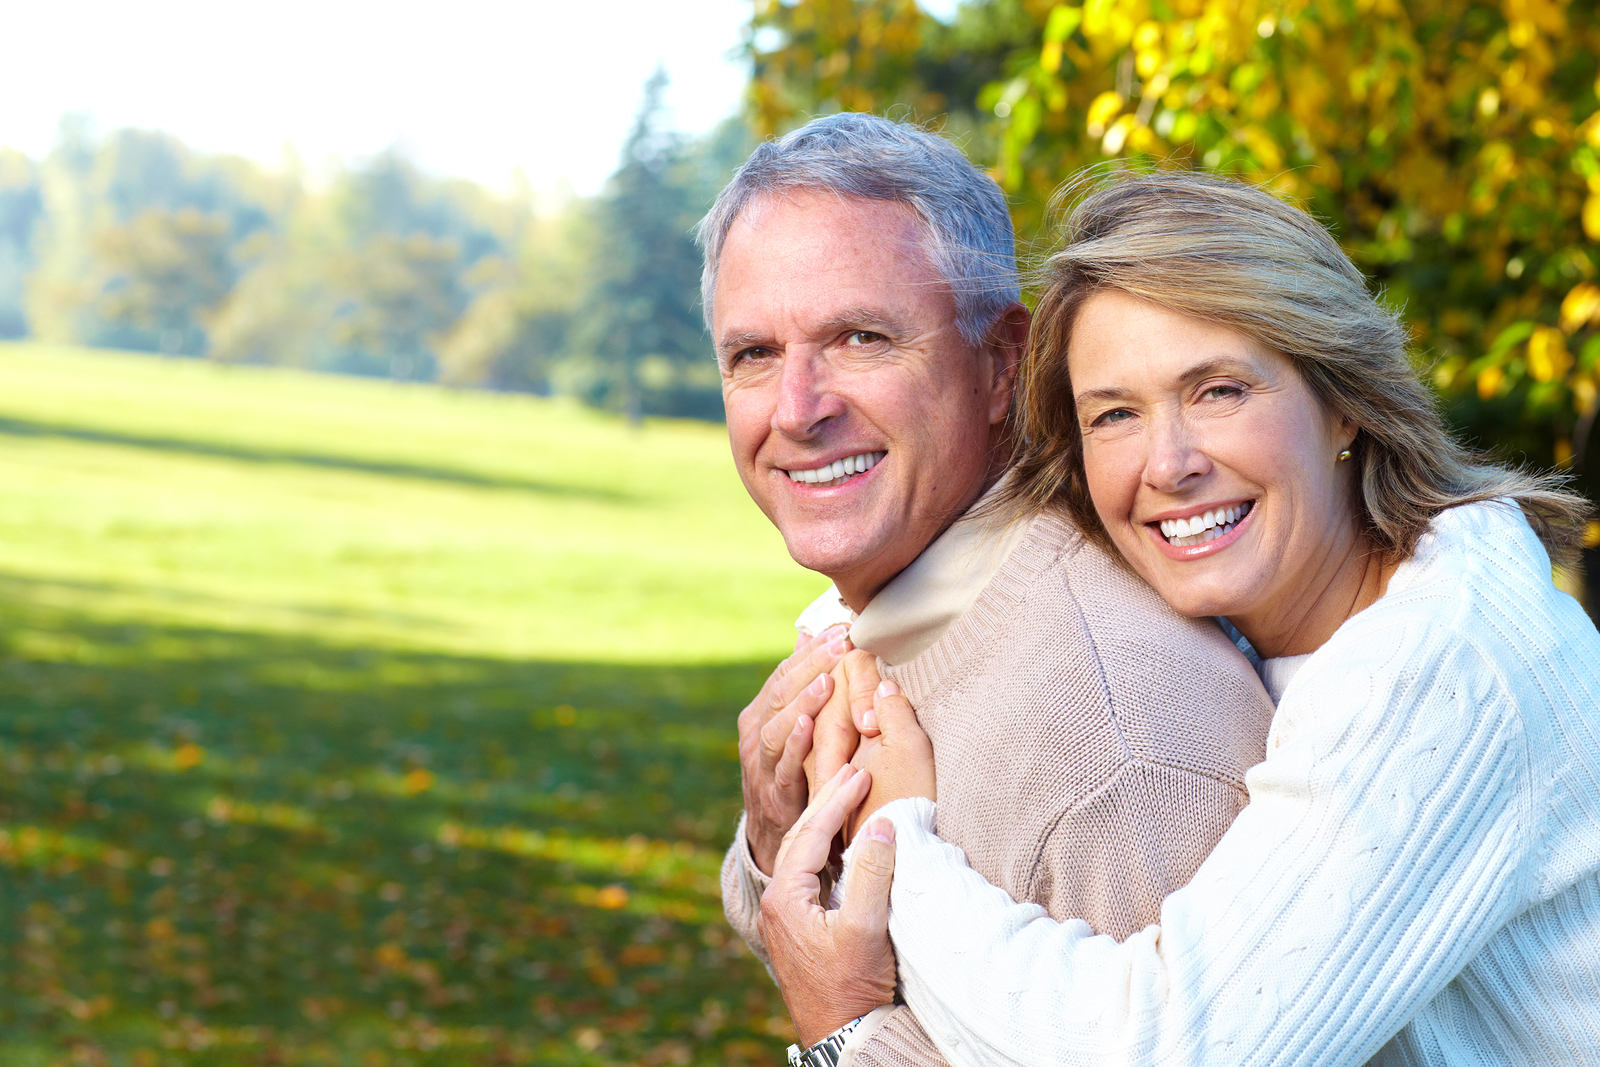 Image of middle-aged couple in park